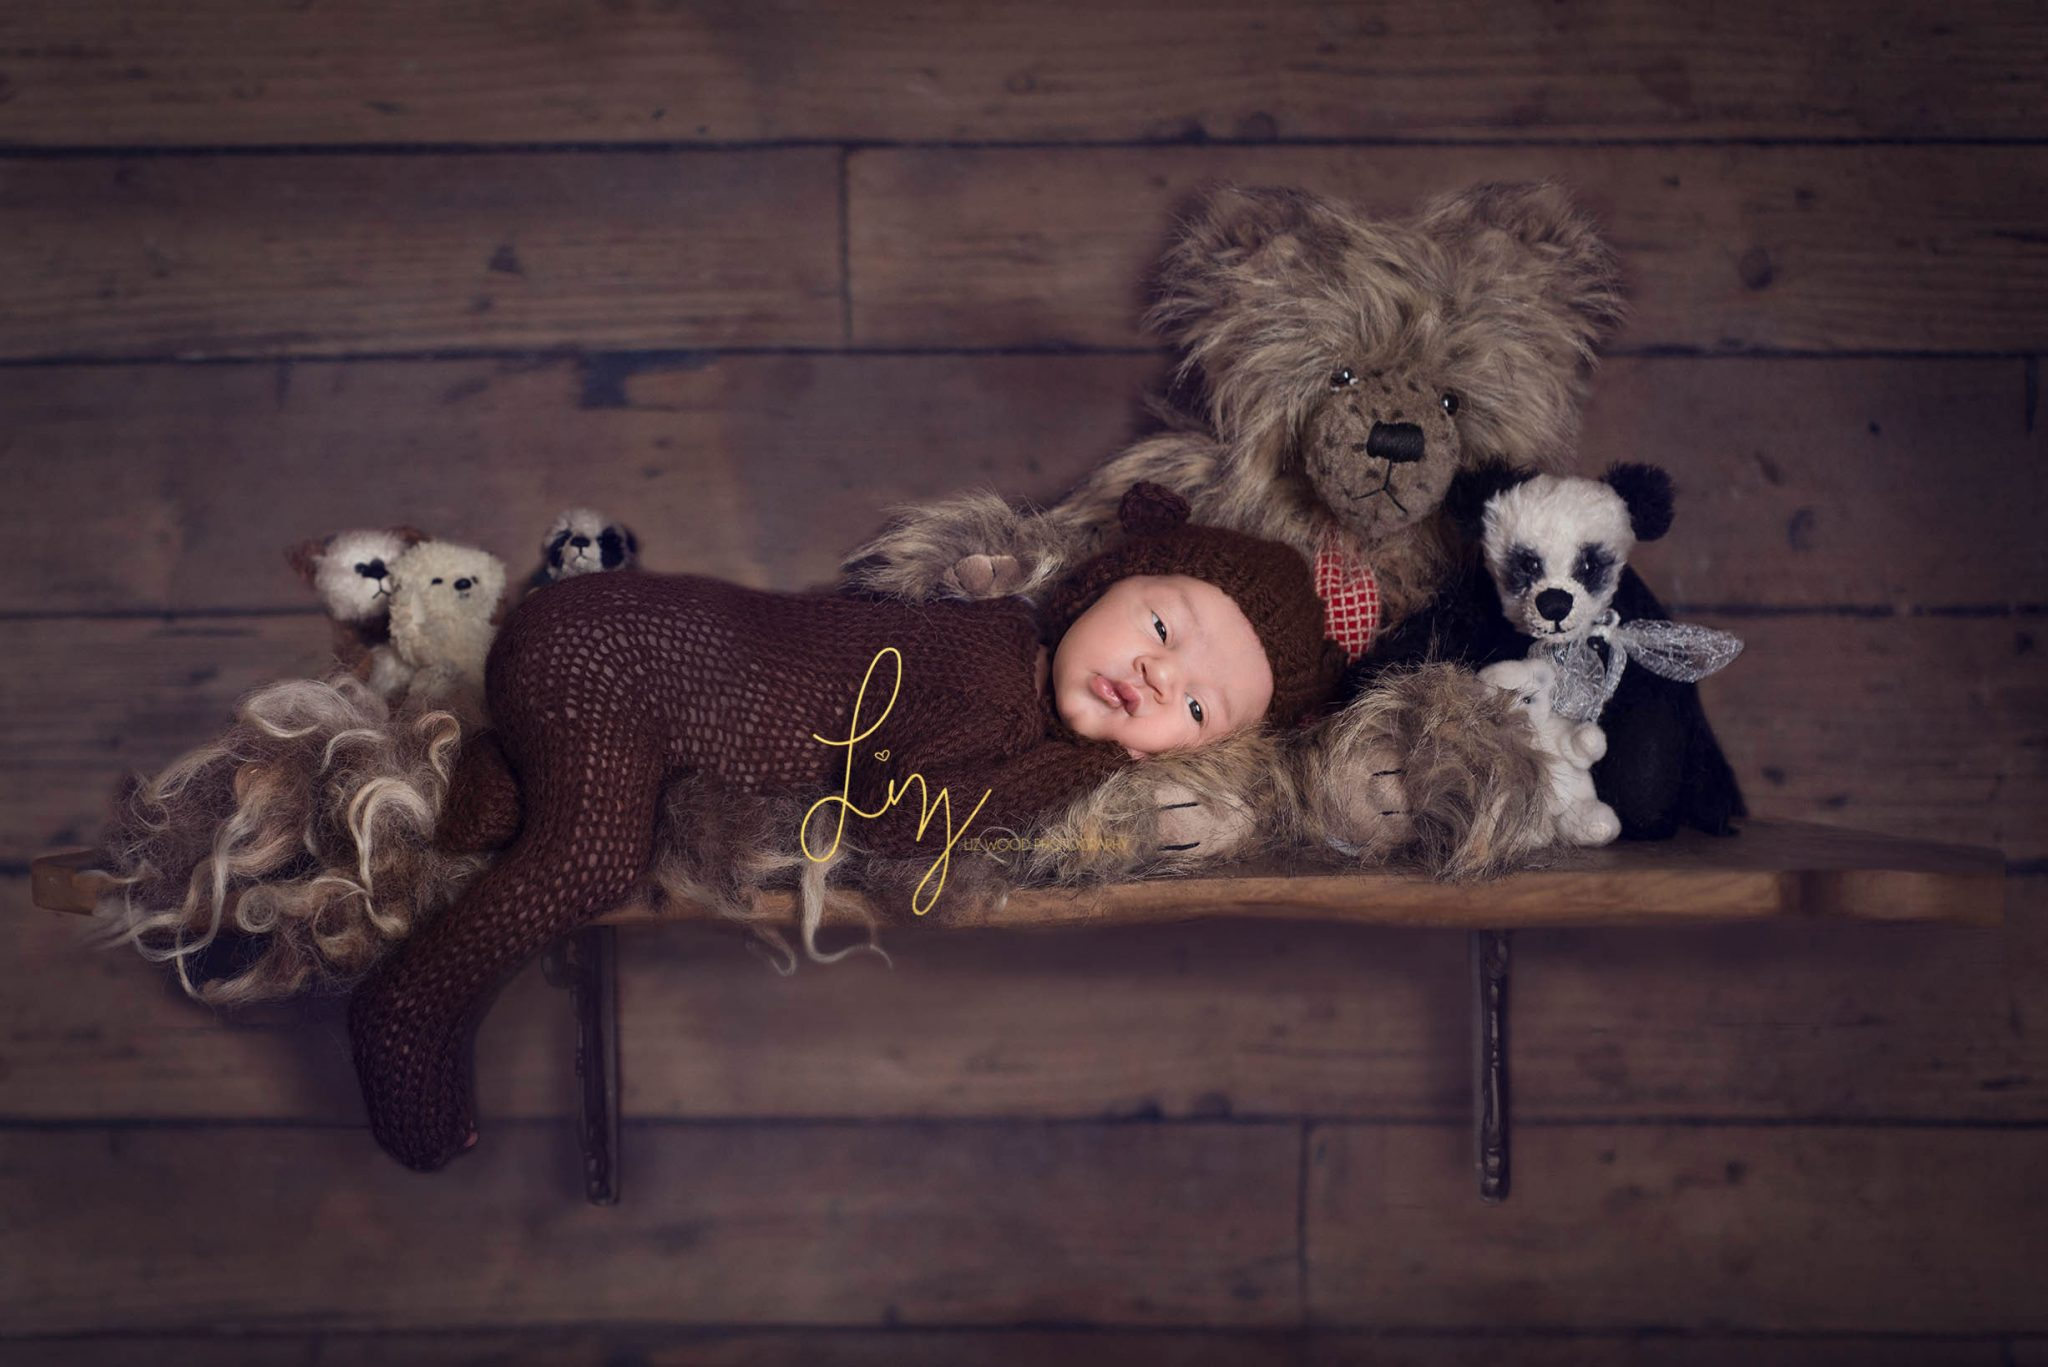 Baby teddy bear - safe composite shelf picture, baby boy dressed as a bear.